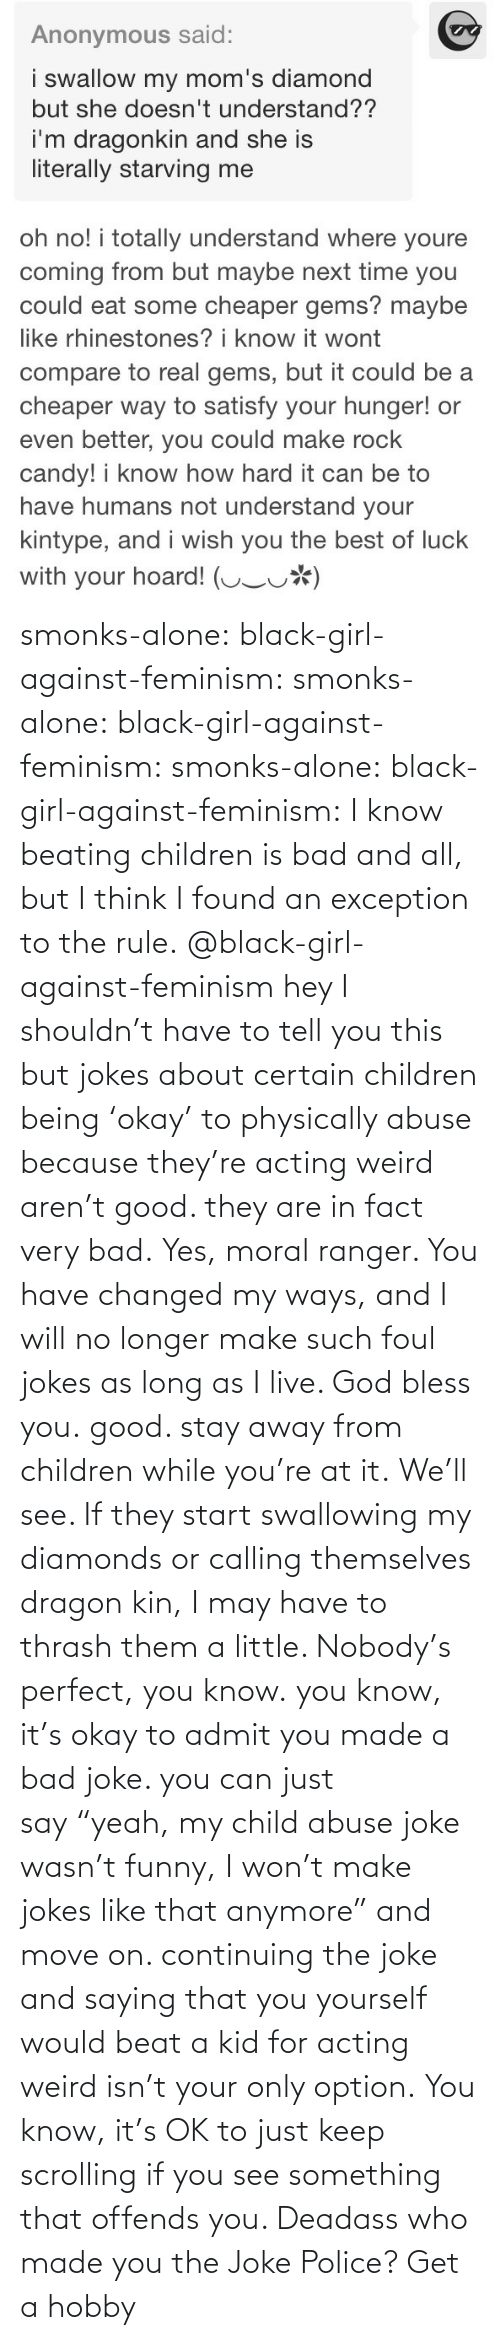 "abuse: smonks-alone:  black-girl-against-feminism: smonks-alone:  black-girl-against-feminism:  smonks-alone:  black-girl-against-feminism: I know beating children is bad and all, but I think I found an exception to the rule. @black-girl-against-feminism hey I shouldn't have to tell you this but jokes about certain children being 'okay' to physically abuse because they're acting weird aren't good. they are in fact very bad.  Yes, moral ranger. You have changed my ways, and I will no longer make such foul jokes as long as I live. God bless you.  good. stay away from children while you're at it.  We'll see. If they start swallowing my diamonds or calling themselves dragon kin, I may have to thrash them a little. Nobody's perfect, you know.  you know, it's okay to admit you made a bad joke. you can just say ""yeah, my child abuse joke wasn't funny, I won't make jokes like that anymore"" and move on. continuing the joke and saying that you yourself would beat a kid for acting weird isn't your only option.   You know, it's OK to just keep scrolling if you see something that offends you. Deadass who made you the Joke Police? Get a hobby"